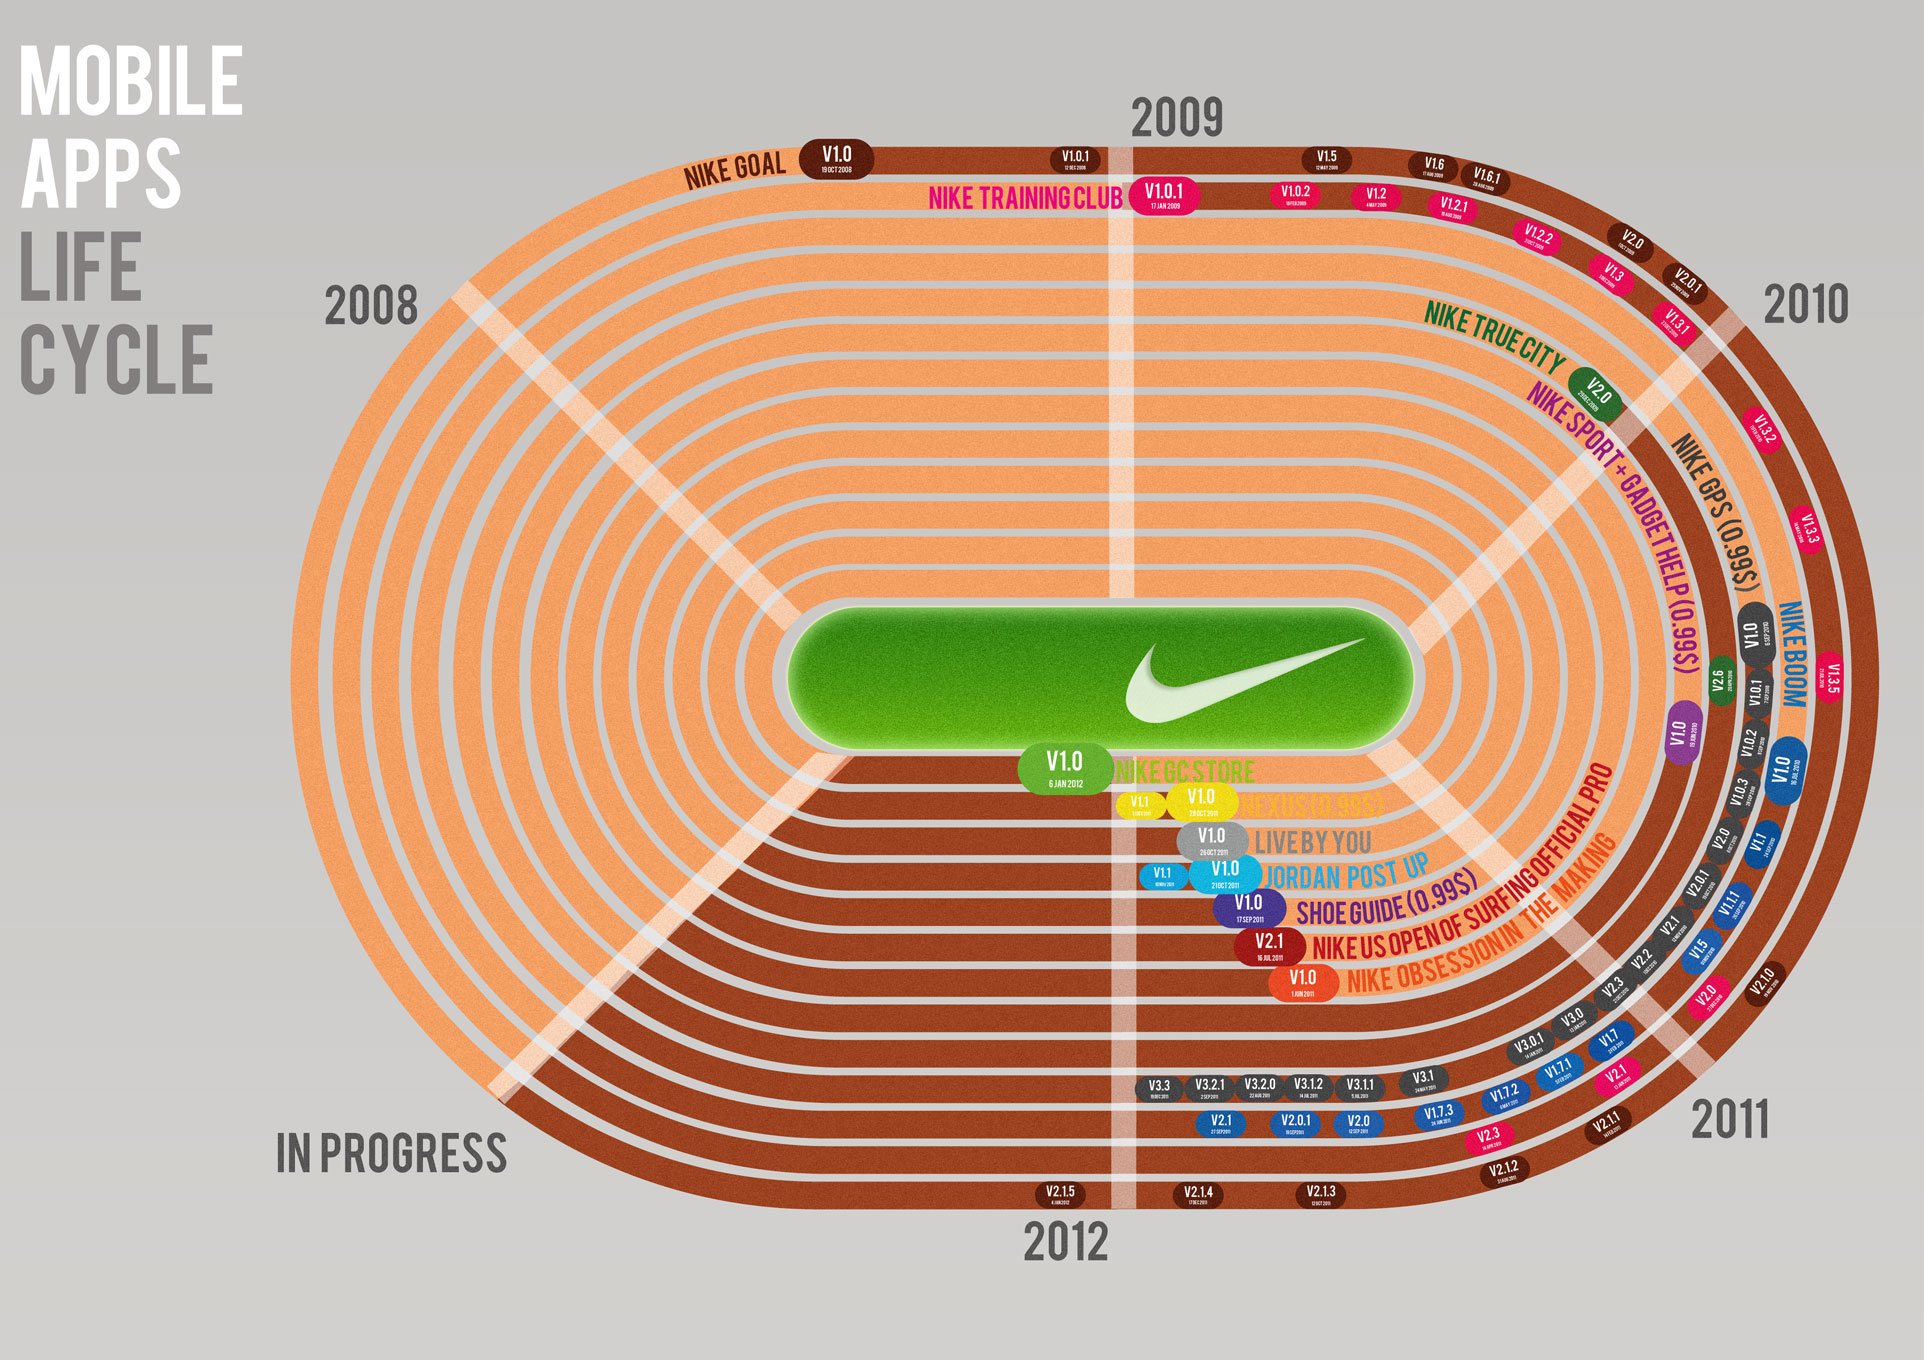 Nike Mobile Apps-Infographic